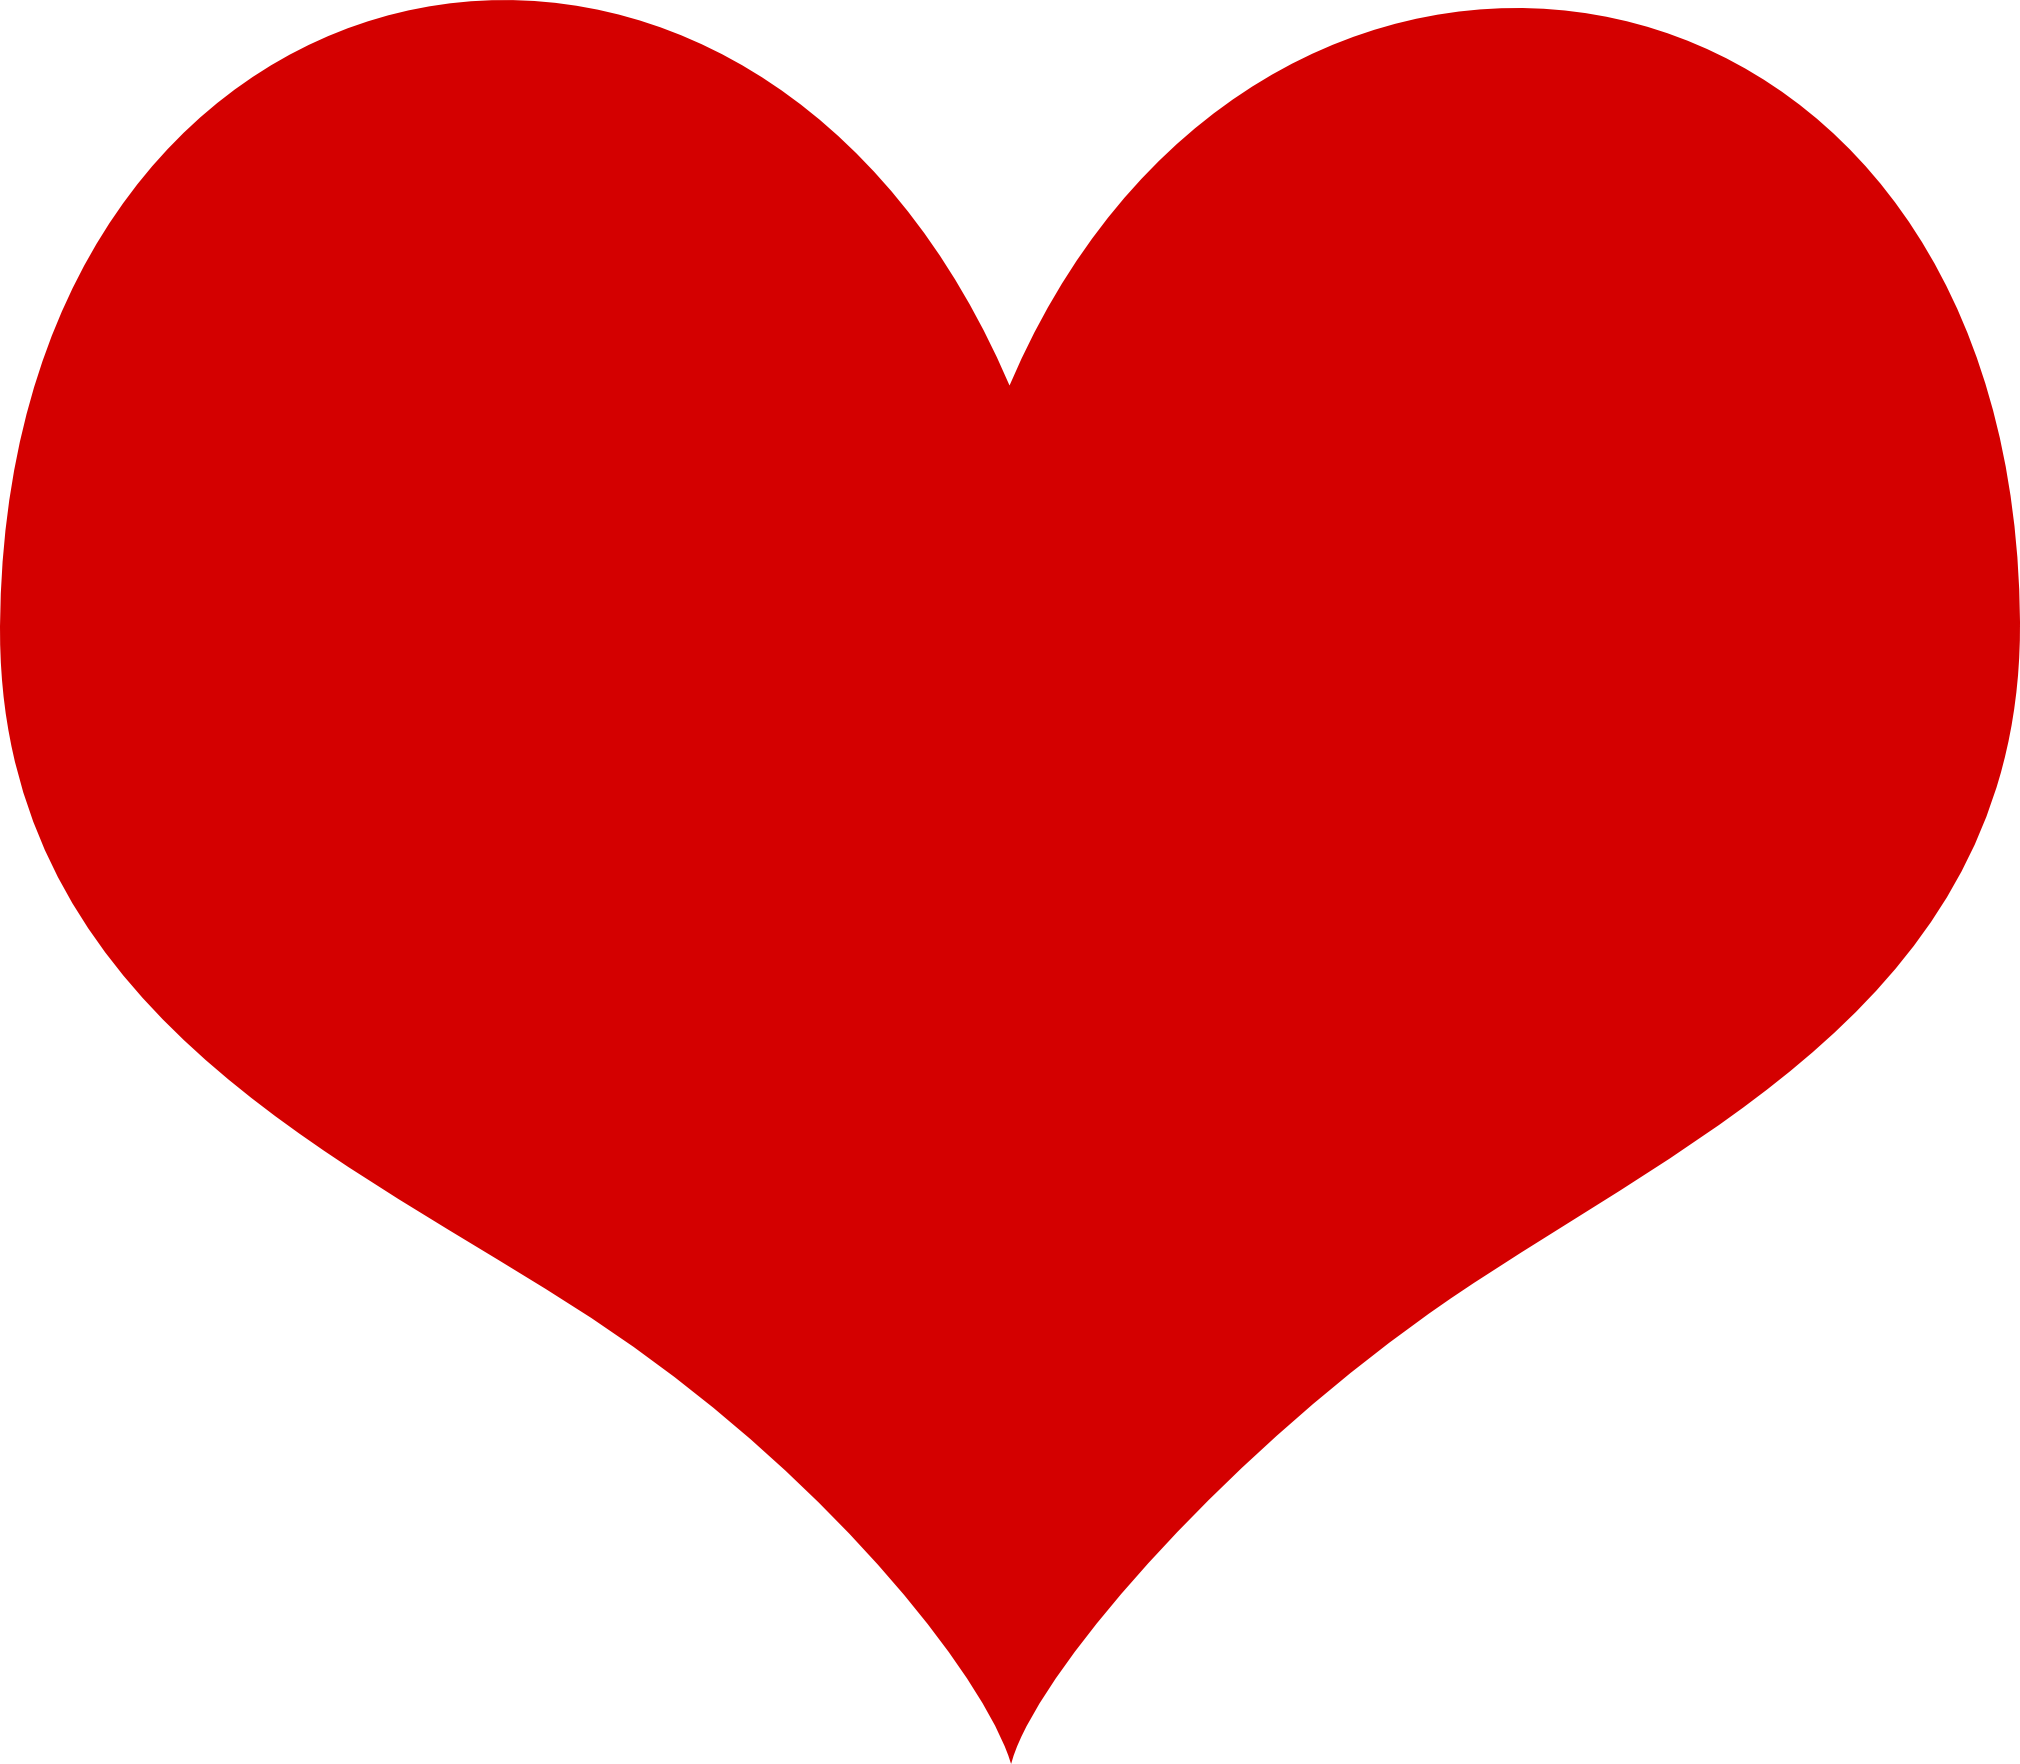 Heart Icon Vector - ClipArt Best